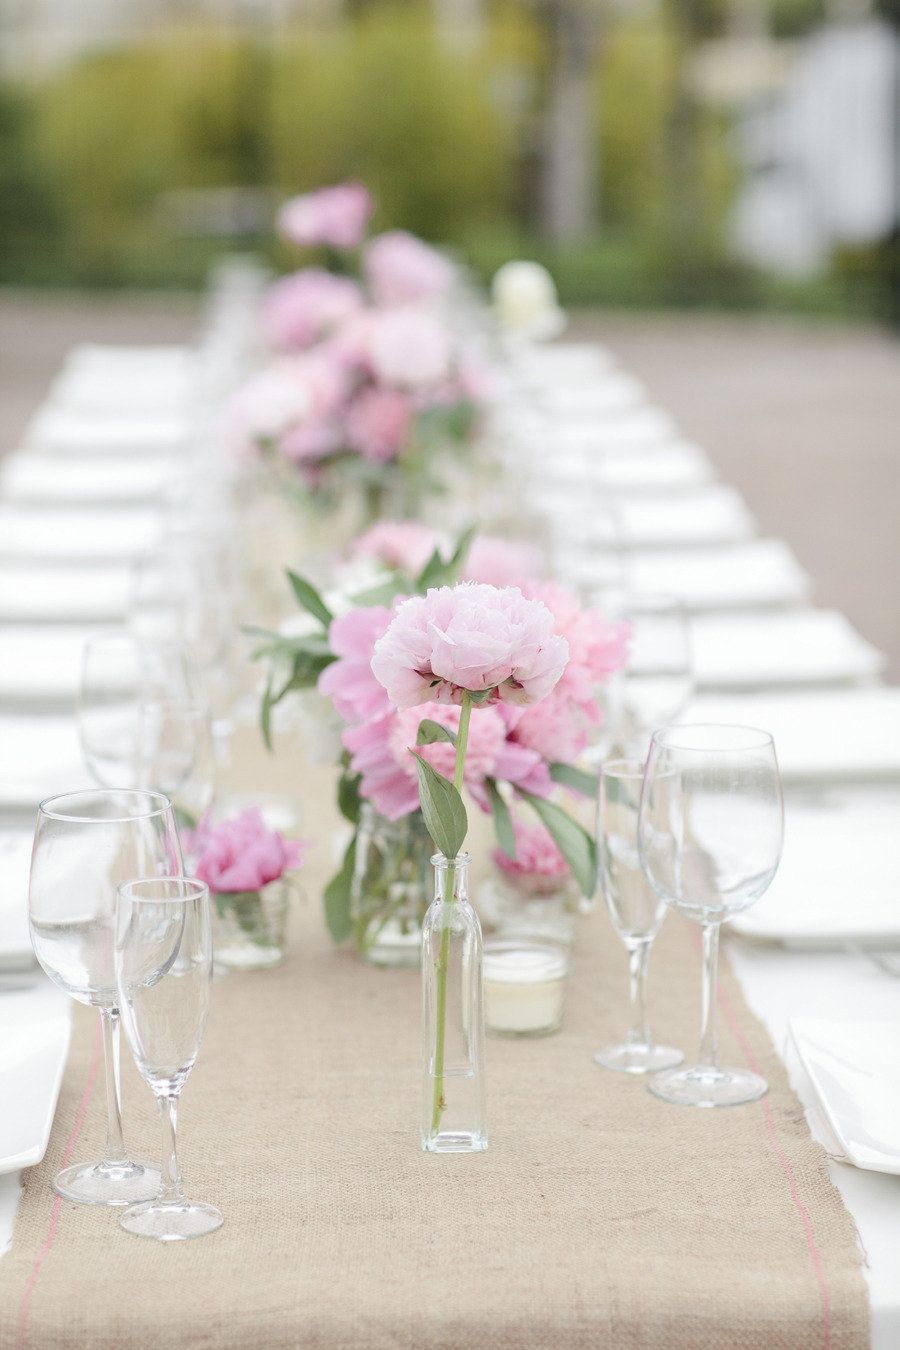 Wedding decorations on tables  San Diego Wedding at Balboa Park by joielala photographie  Burlap